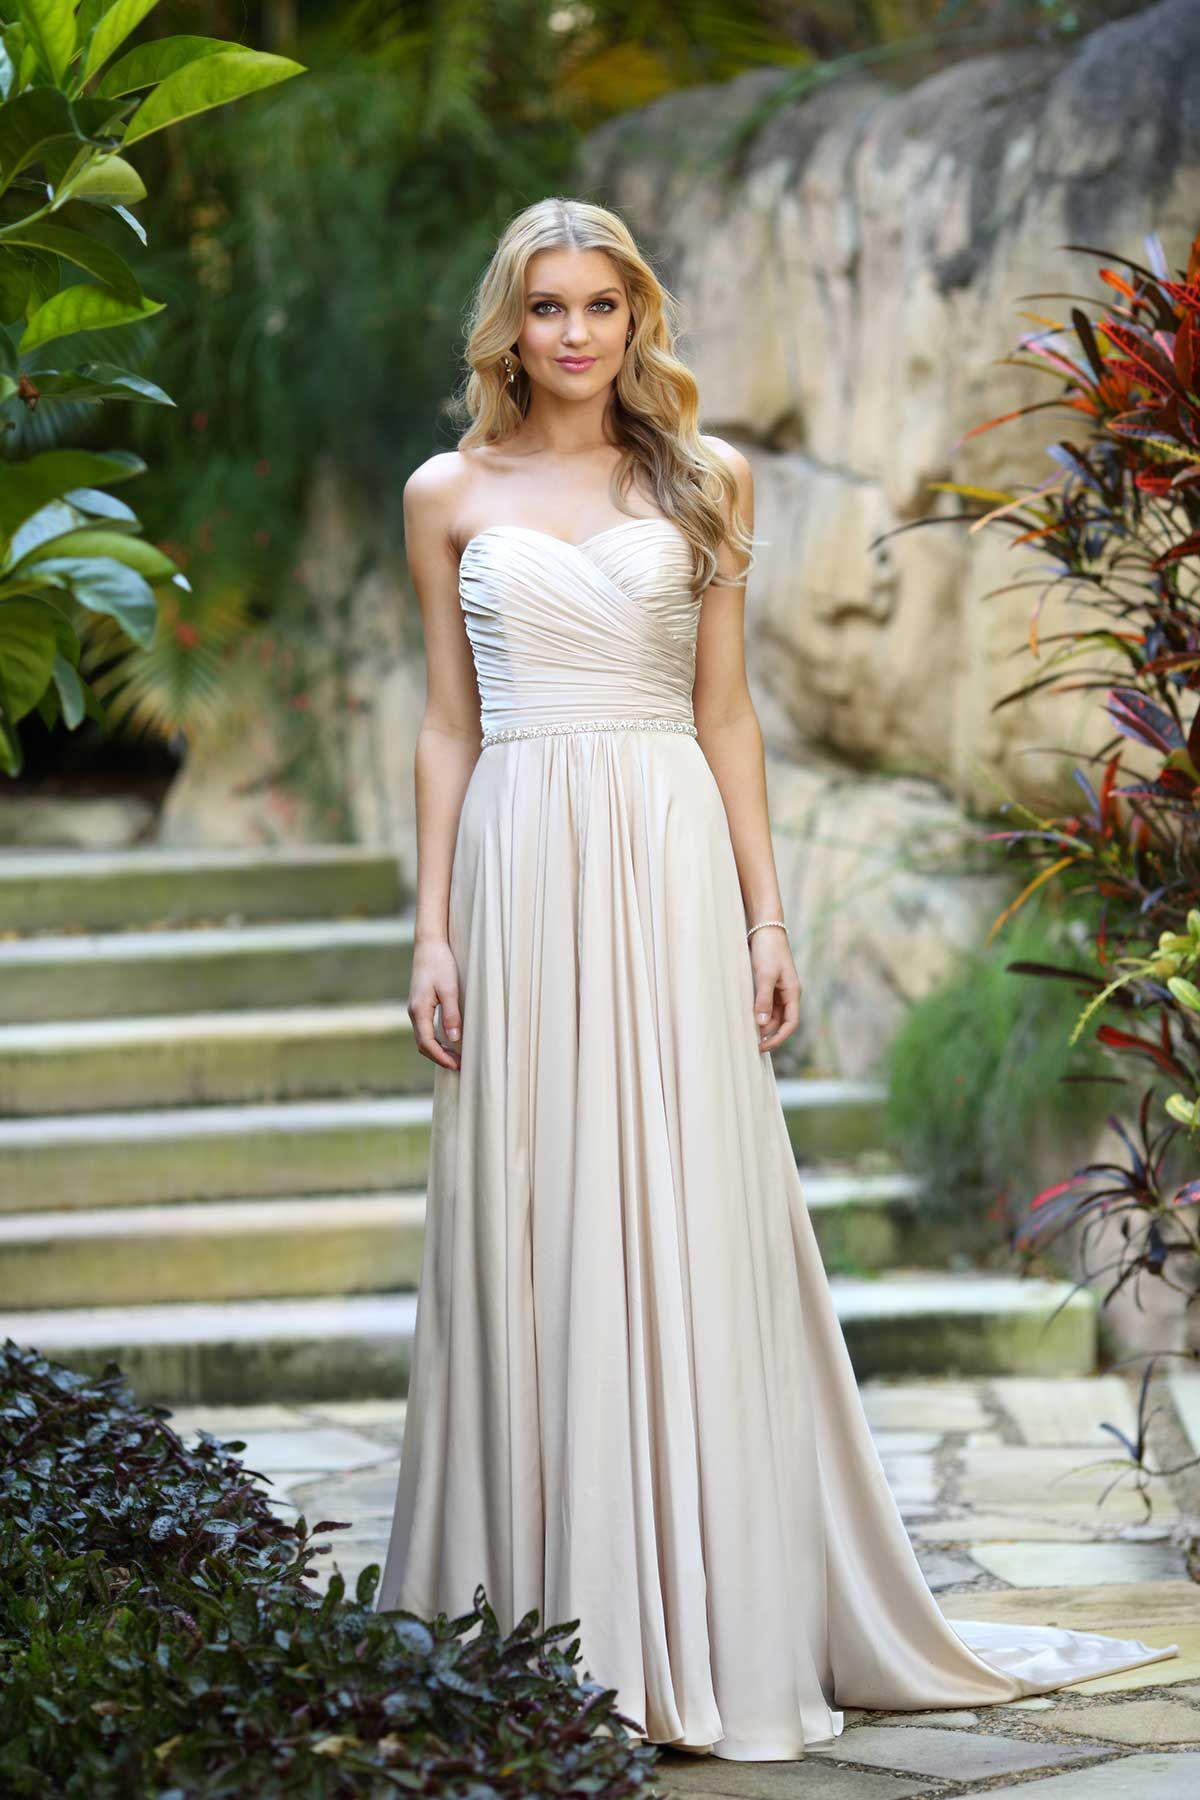 Style kirra designer bella donna by wendy makin wedding